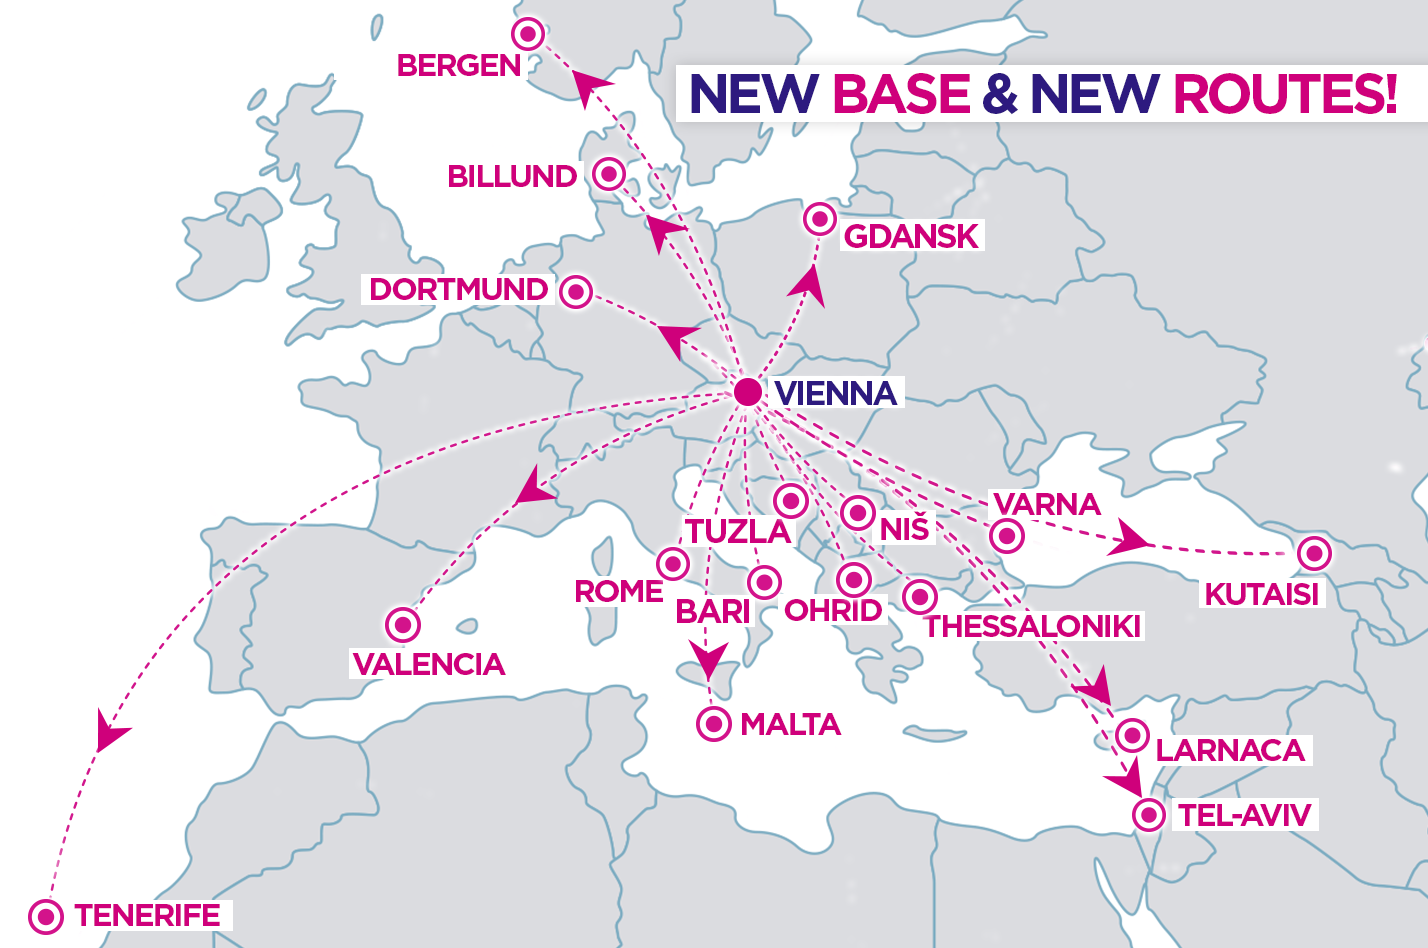 Wizzair 17 new routes from vienna austria travelfree vienna tel aviv vienna from 15 june vienna tuzla vienna from 27 april vienna tenerife vienna from 27 november gumiabroncs Choice Image